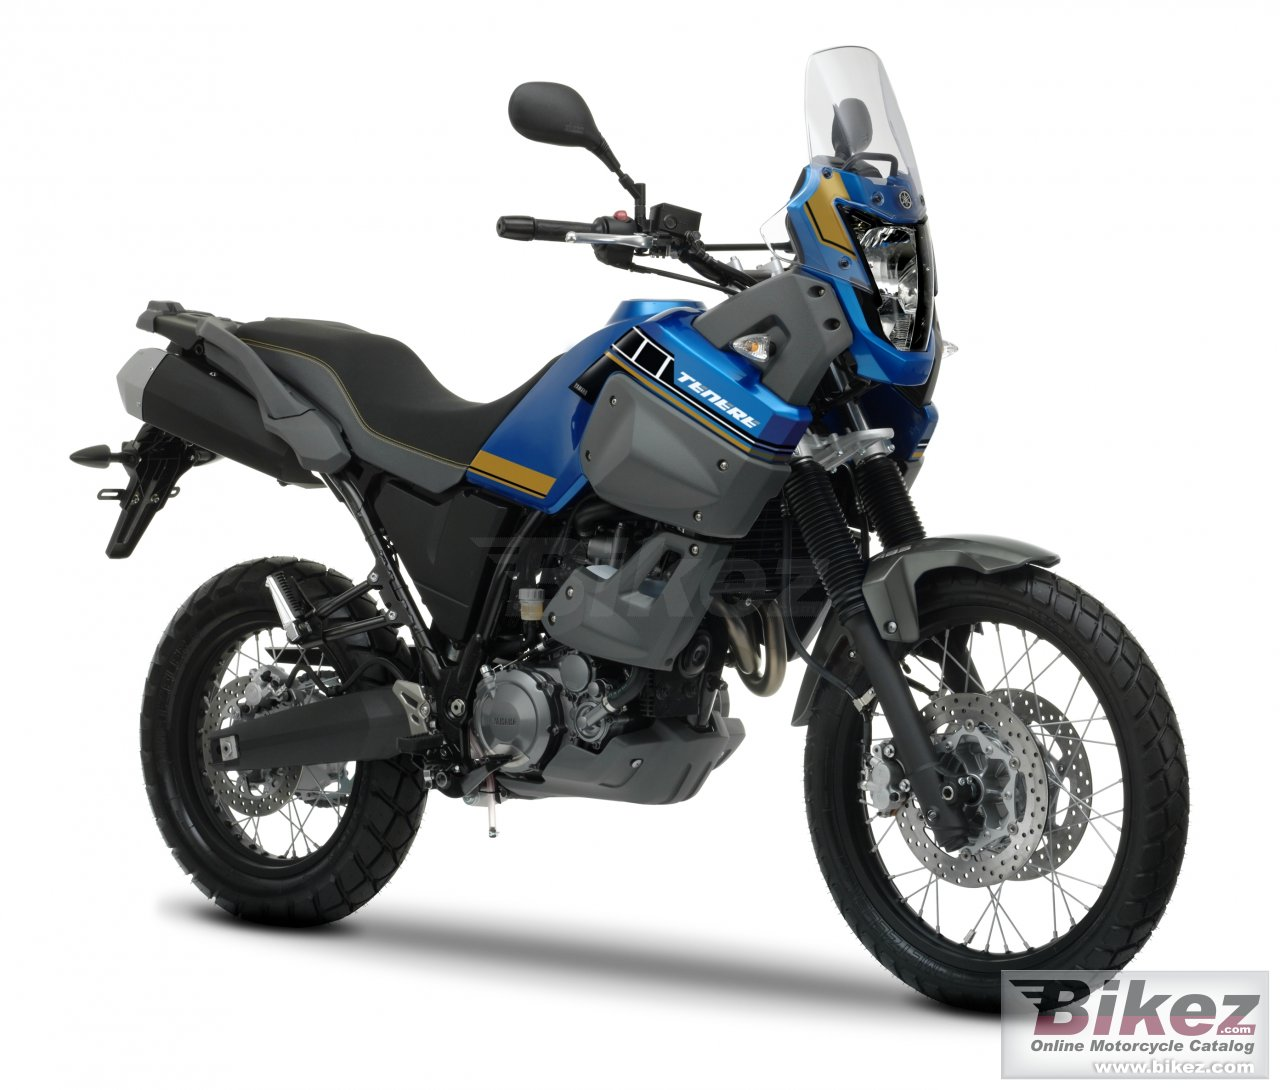 Big Yamaha xt660z tenere abs picture and wallpaper from Bikez.com